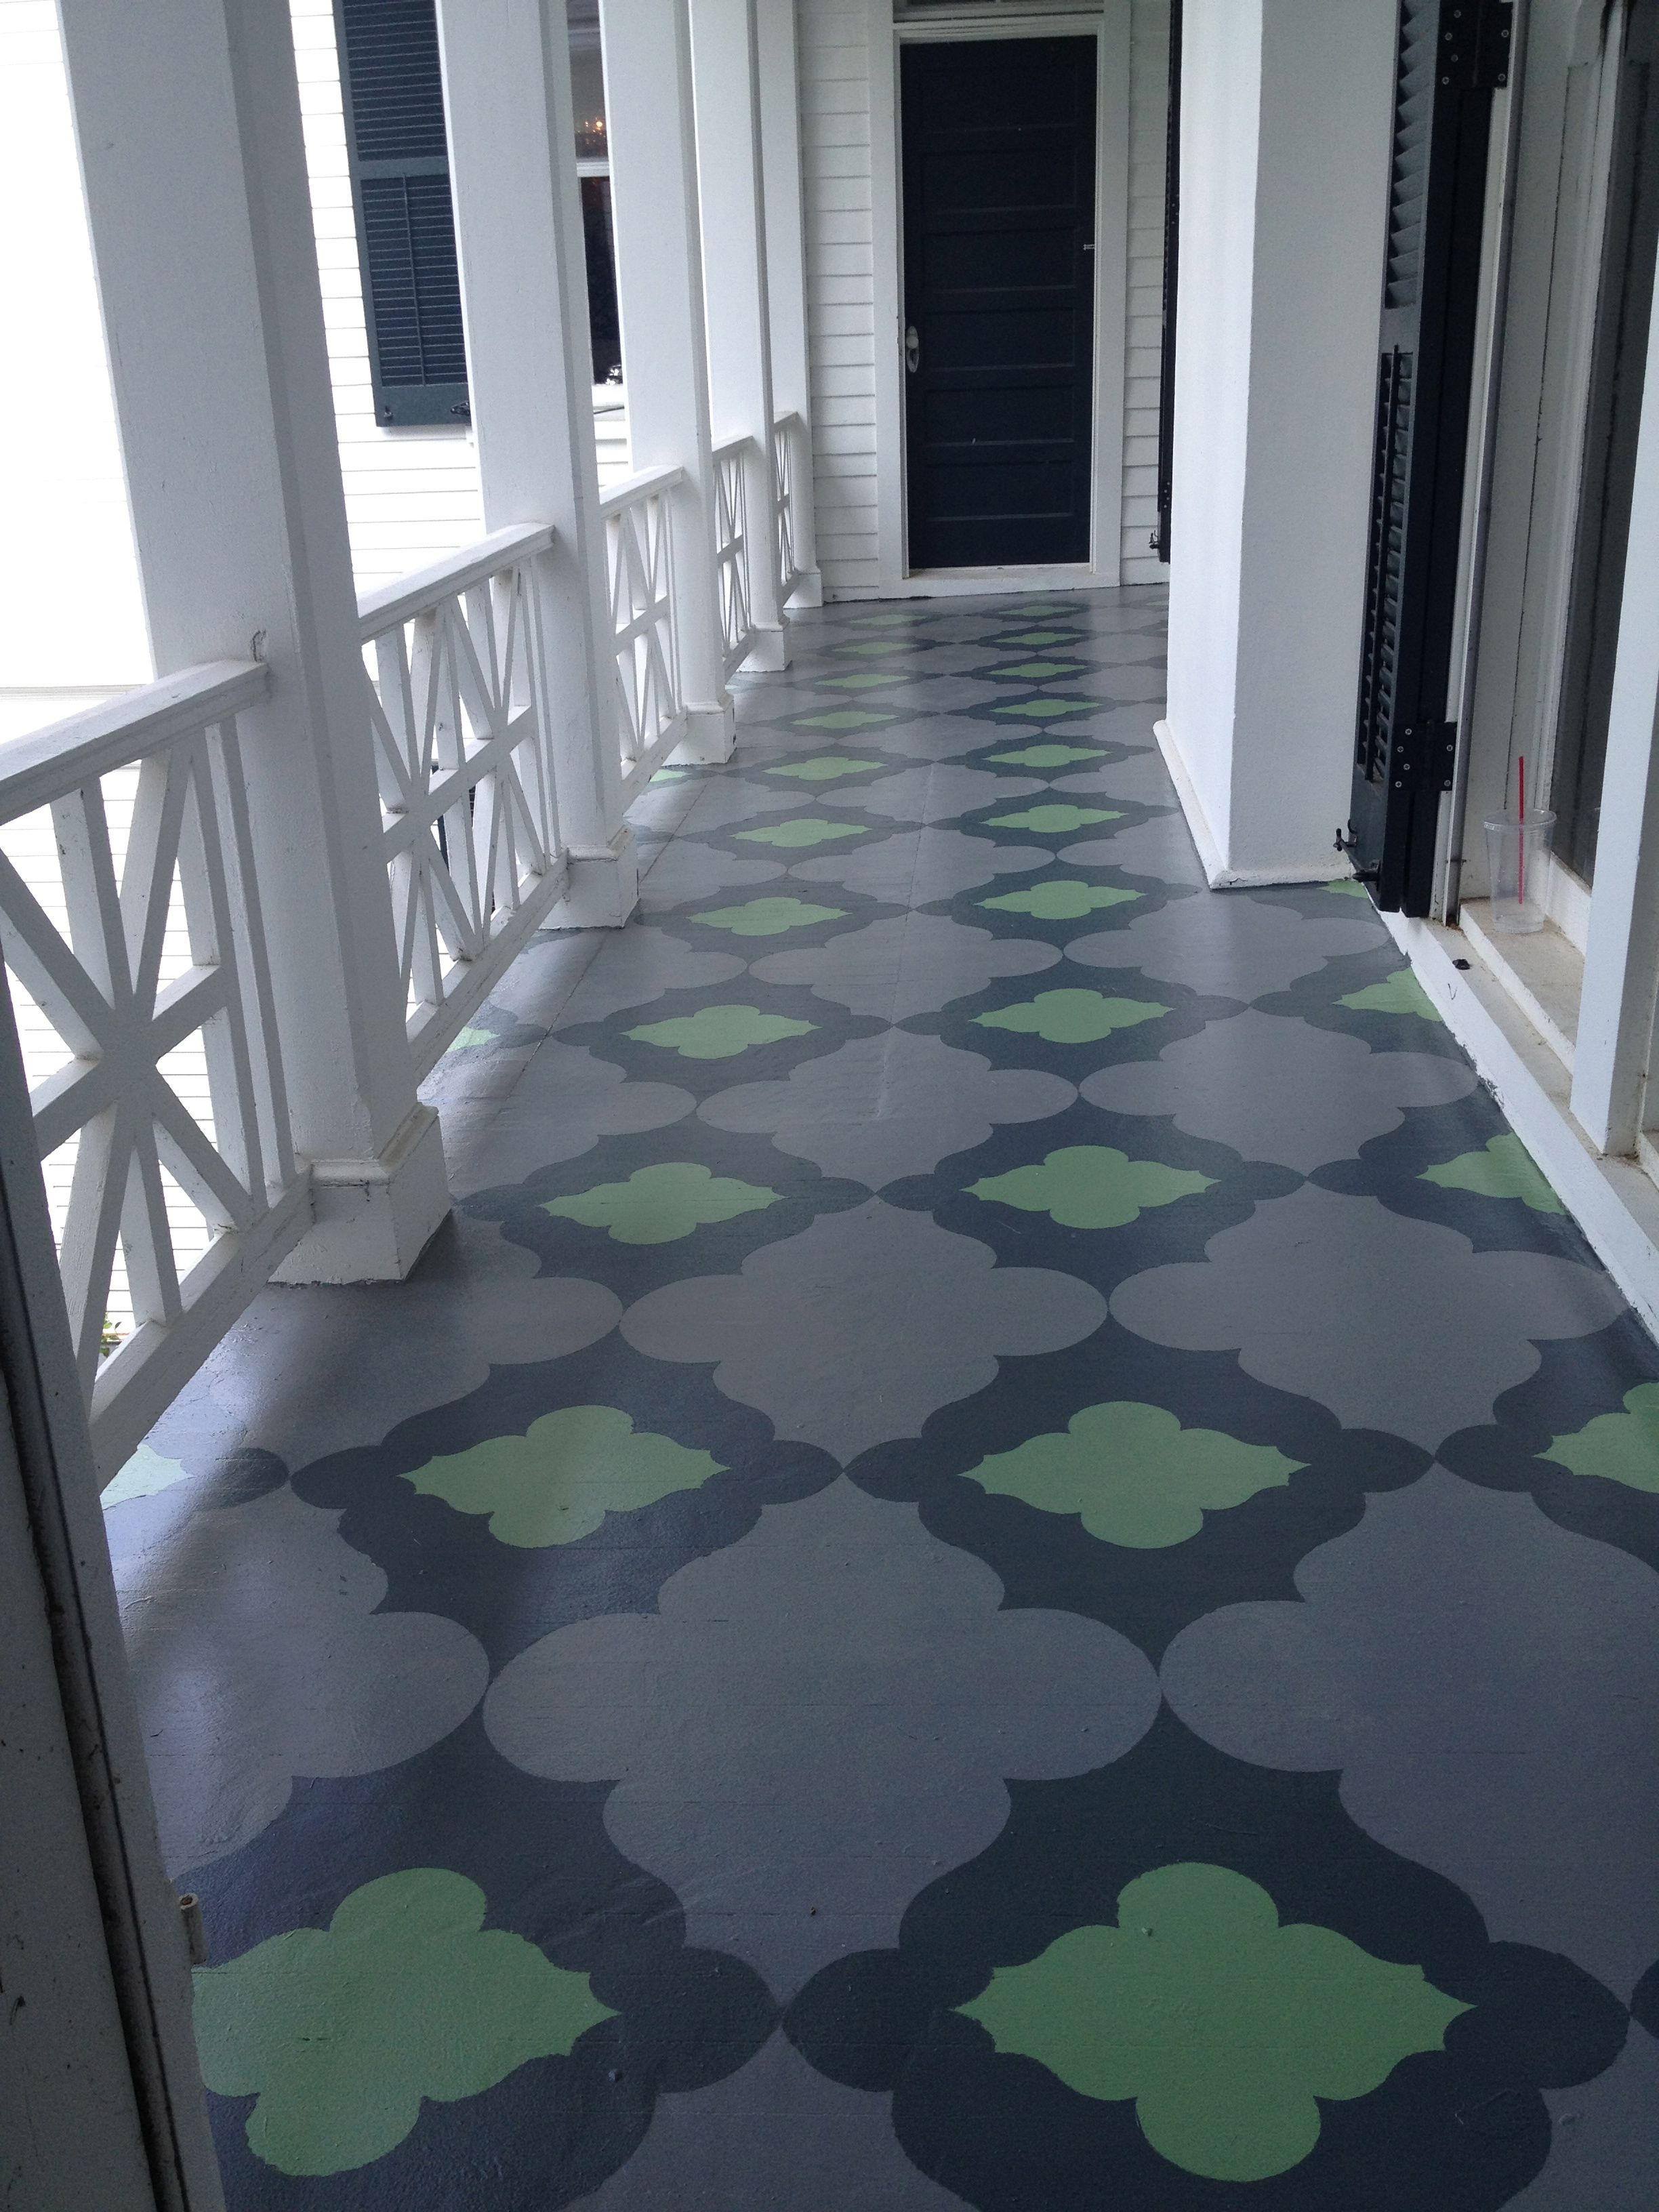 Amazing Painted Porch Floor..Farrow And Ball Paint, Sunny Goode Templates  4 Hour